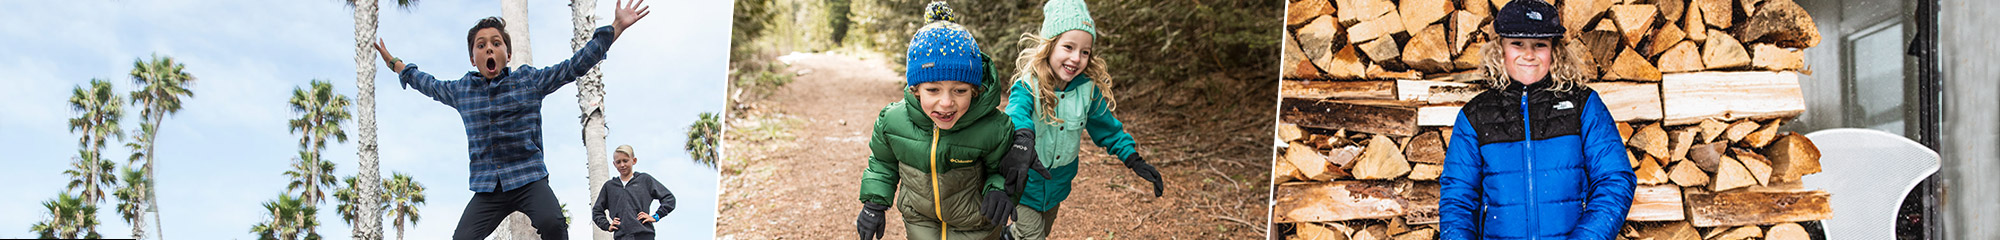 Kids summer and winter clothing and shoes